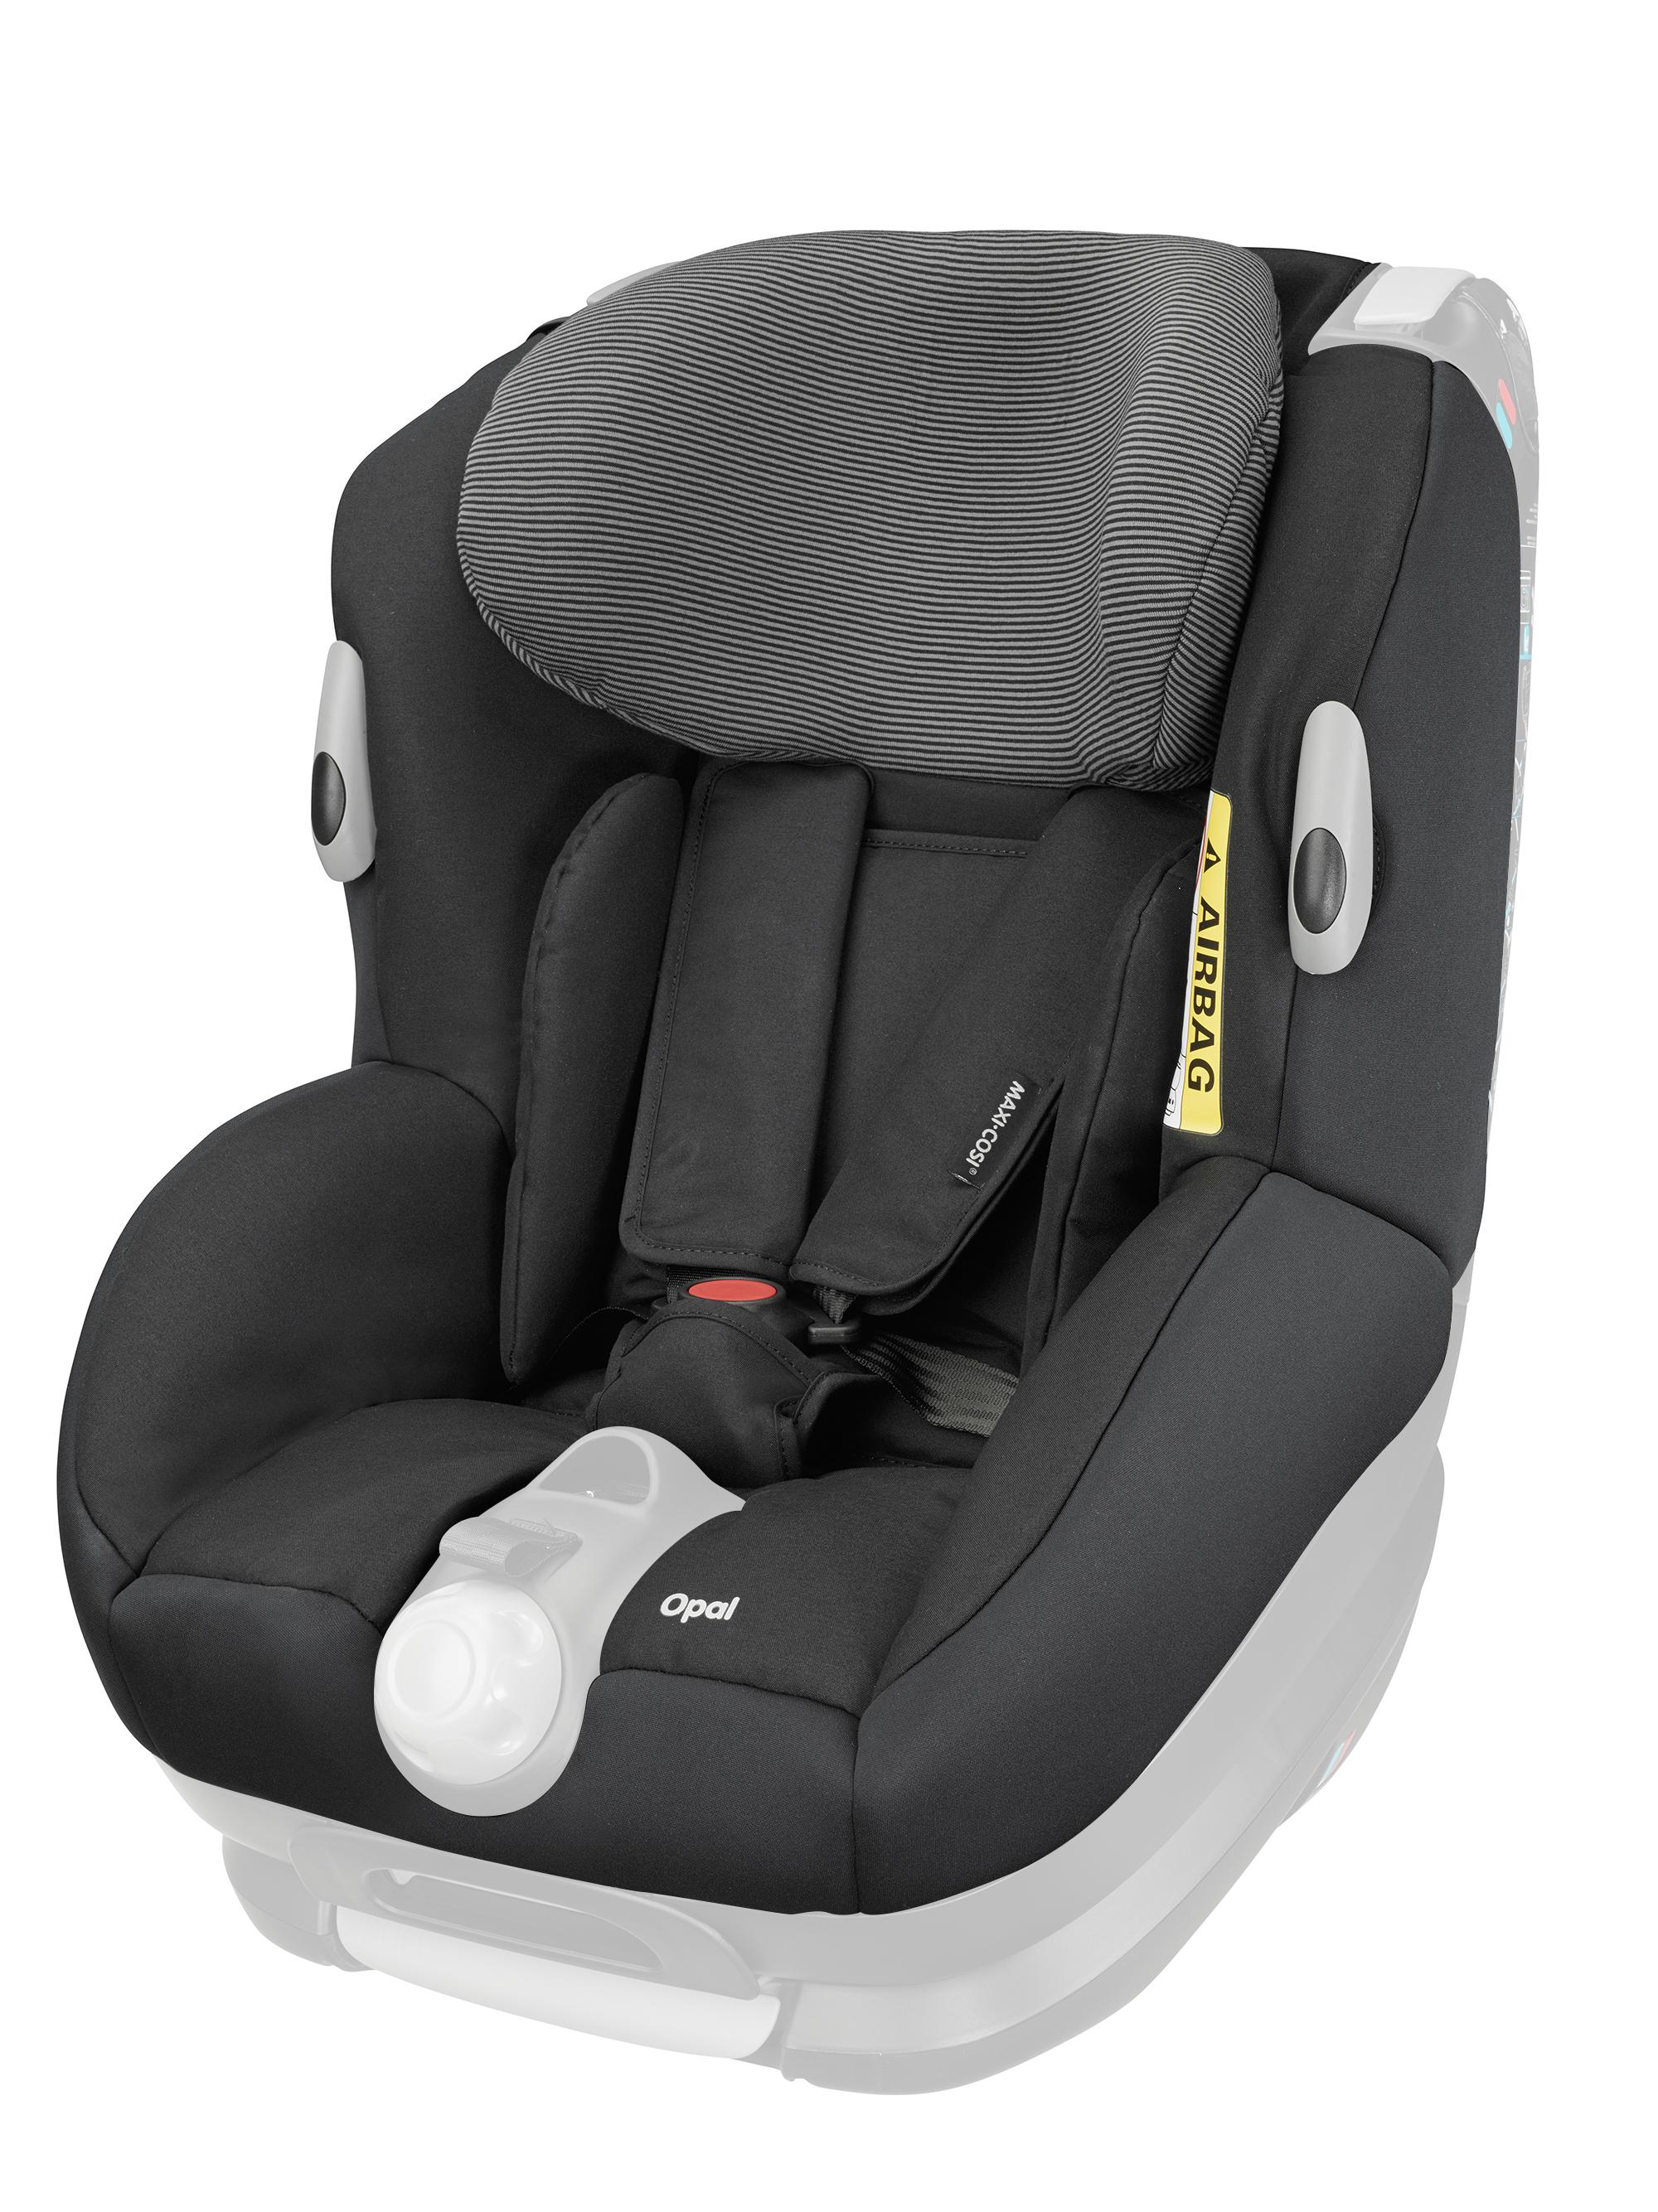 maxi cosi opal car seat replacement cover black raven. Black Bedroom Furniture Sets. Home Design Ideas